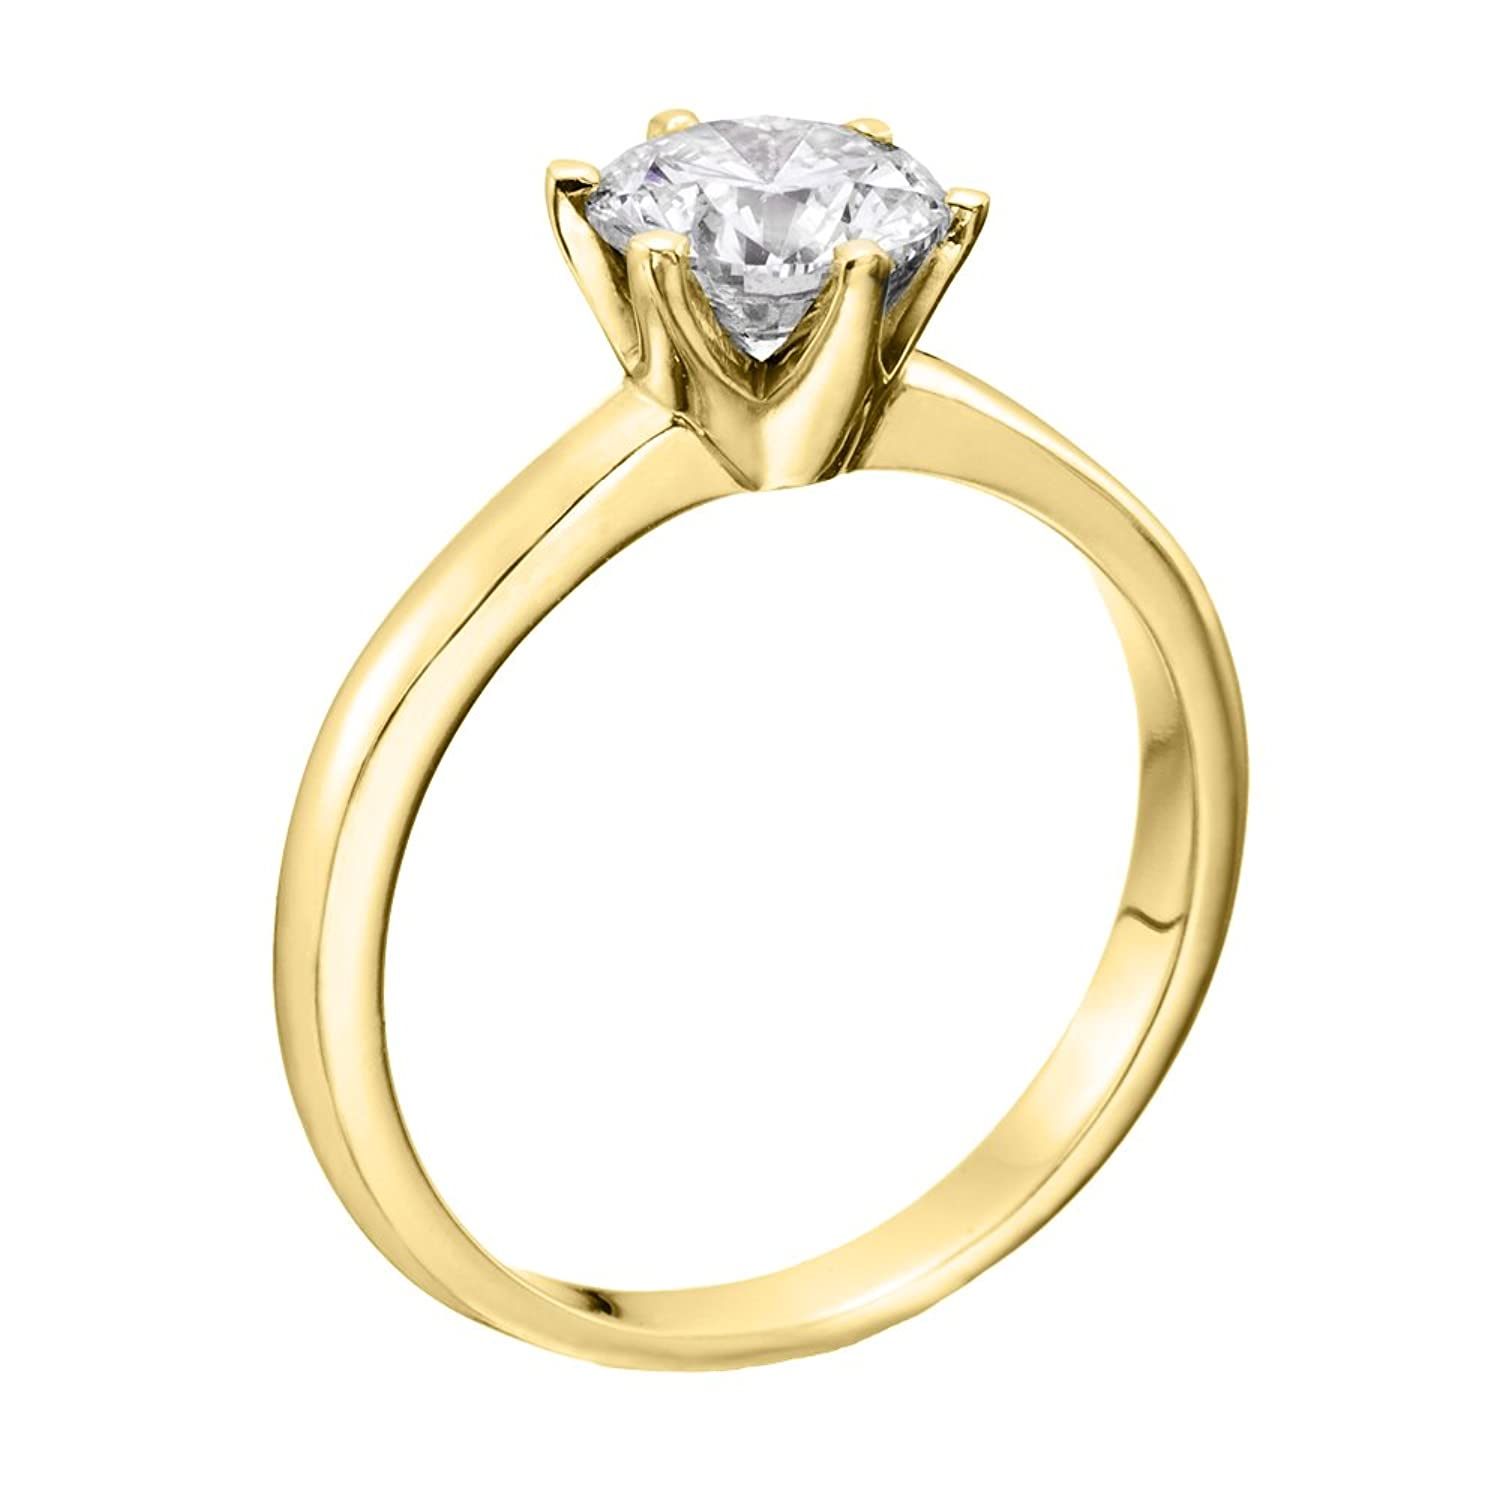 white engagement website s rose diamond unique solitaire of metal rings ring your or show best gold me yellow jewellry with